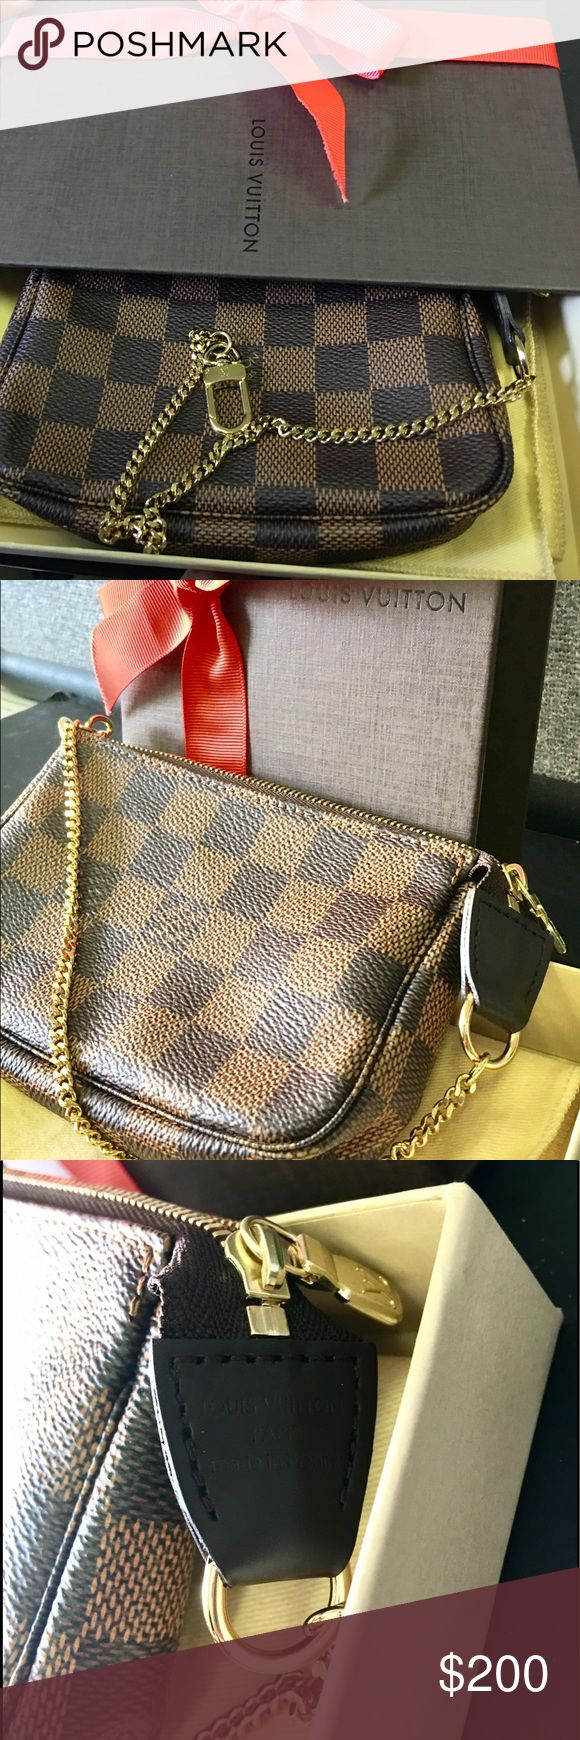 Authentic Louis Vuitton mini pochette new in box! Brand new in box! Authentic Louis Vuitton canvas monogram design mini pochette Never used! Ask ANY questions or request specific information if you are interested,  also have direct link to item on official Website! Louis Vuitton Bags Clutches & Wristlets